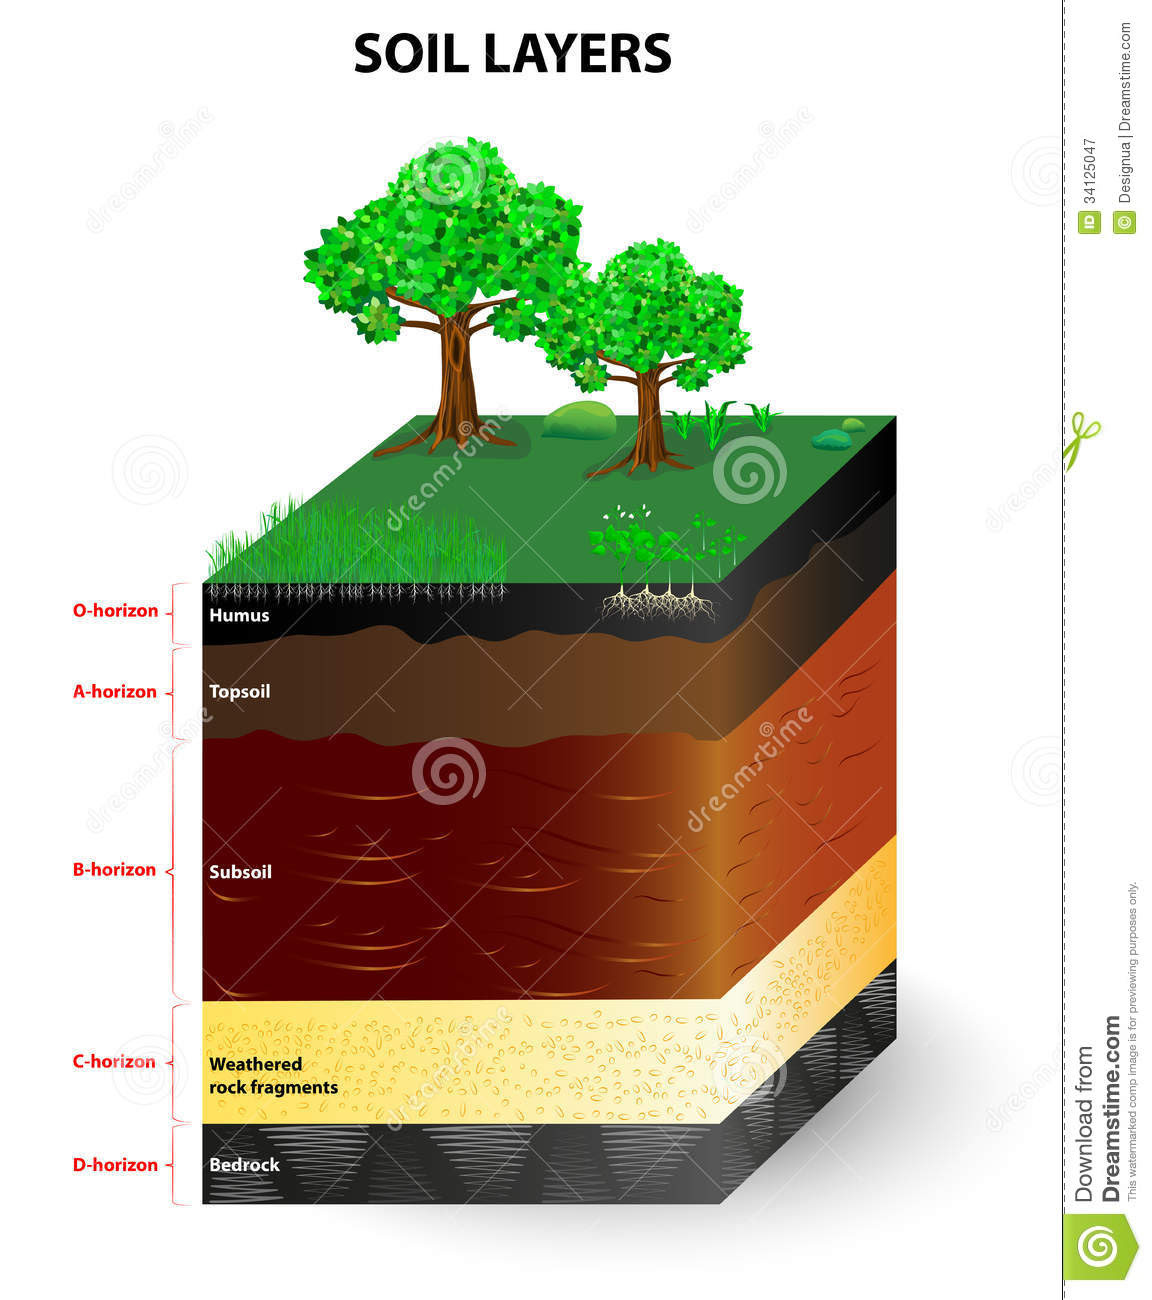 Layers Of A Soil Profile Royalty Free Stock Photography ...